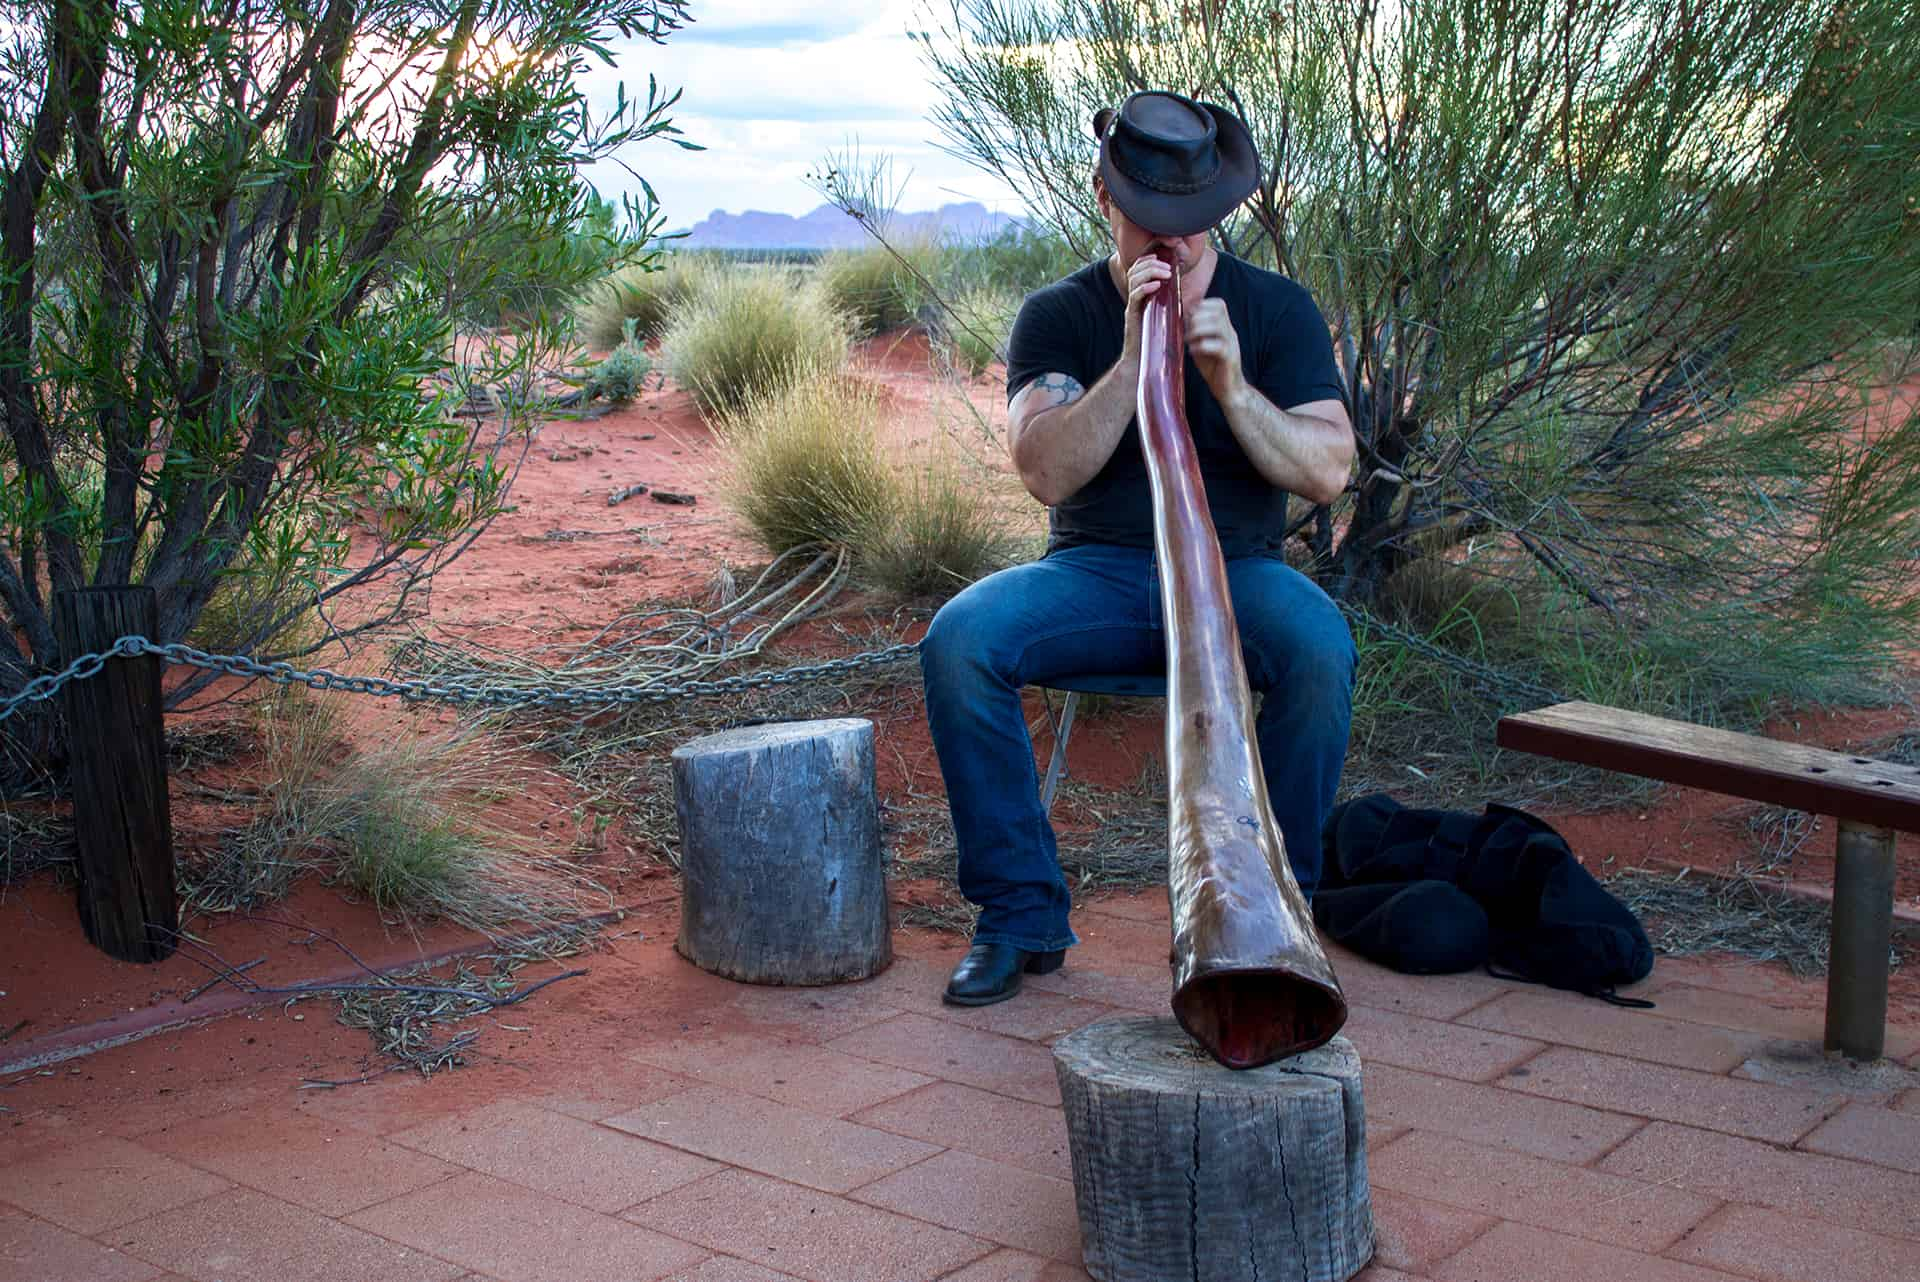 Aboriginal wind instrument called didgeridoo